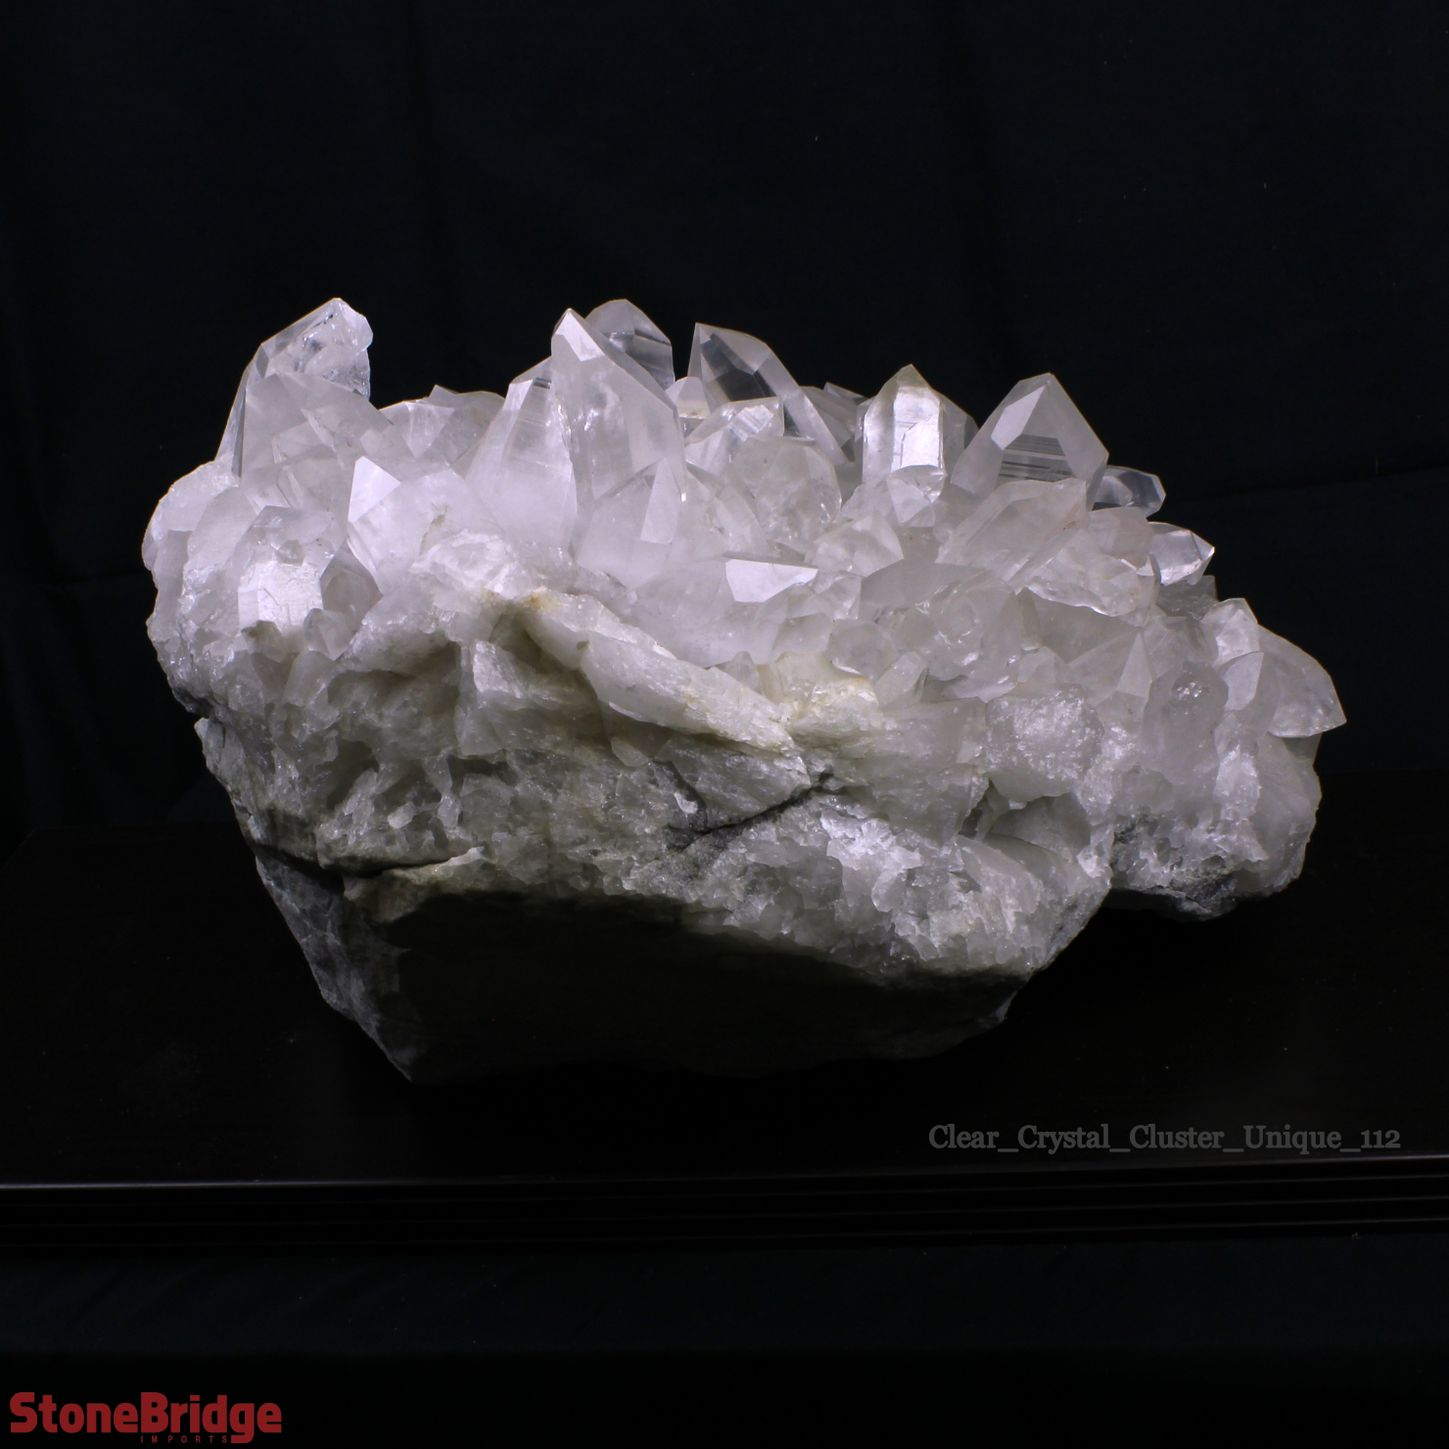 CLCRU112_Clear_Crystal_Cluster_Unique_1127.jpg